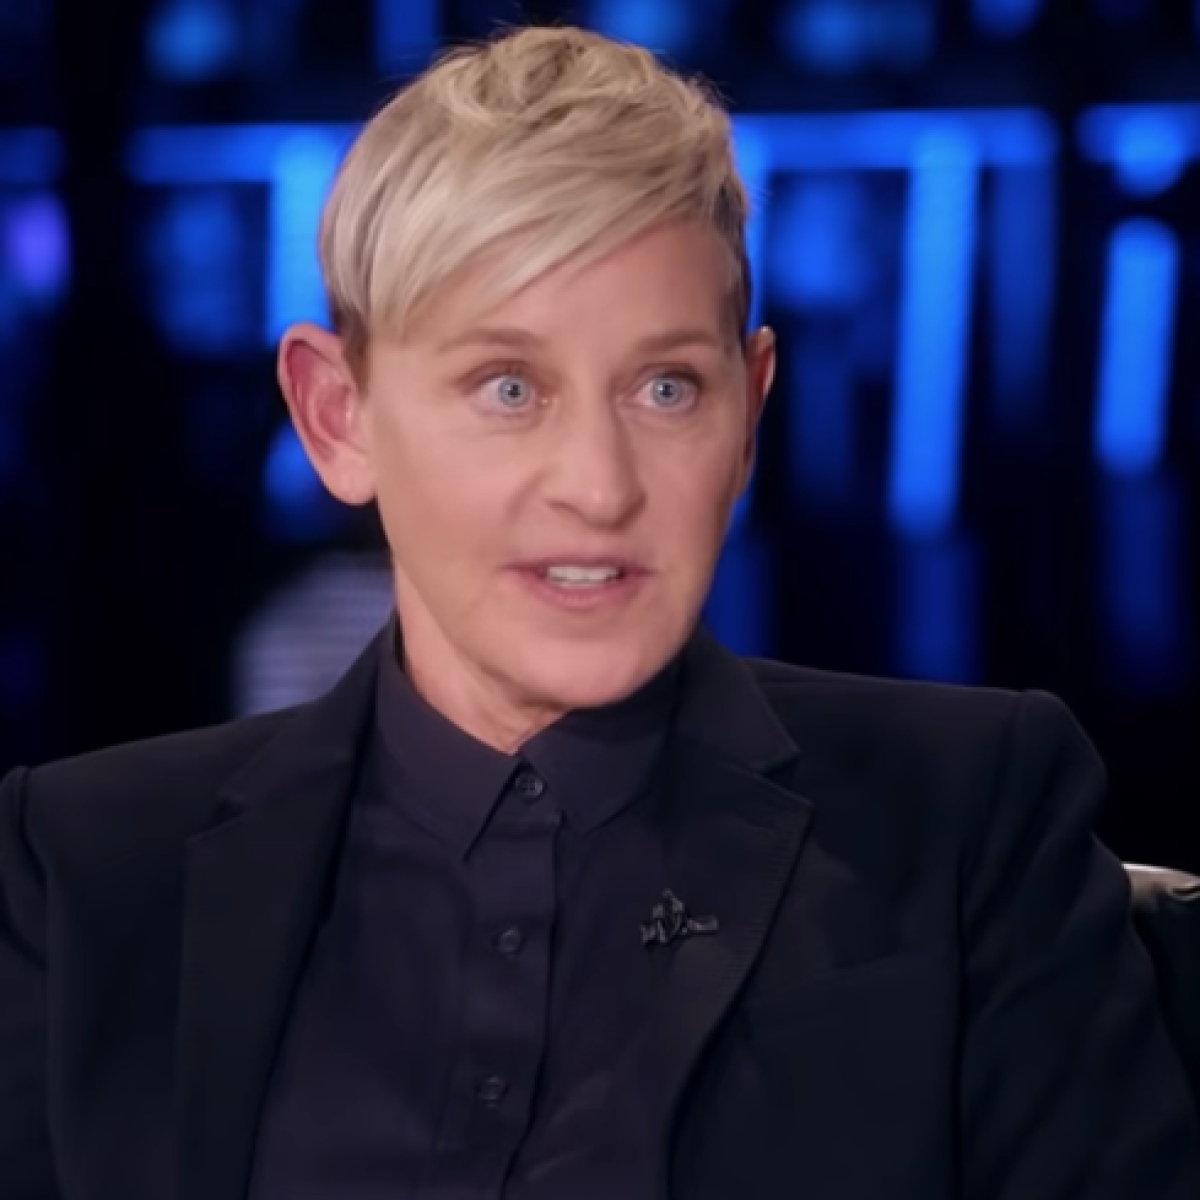 'It was too orchestrated': Ellen DeGeneres opens up about workplace misconduct scandal